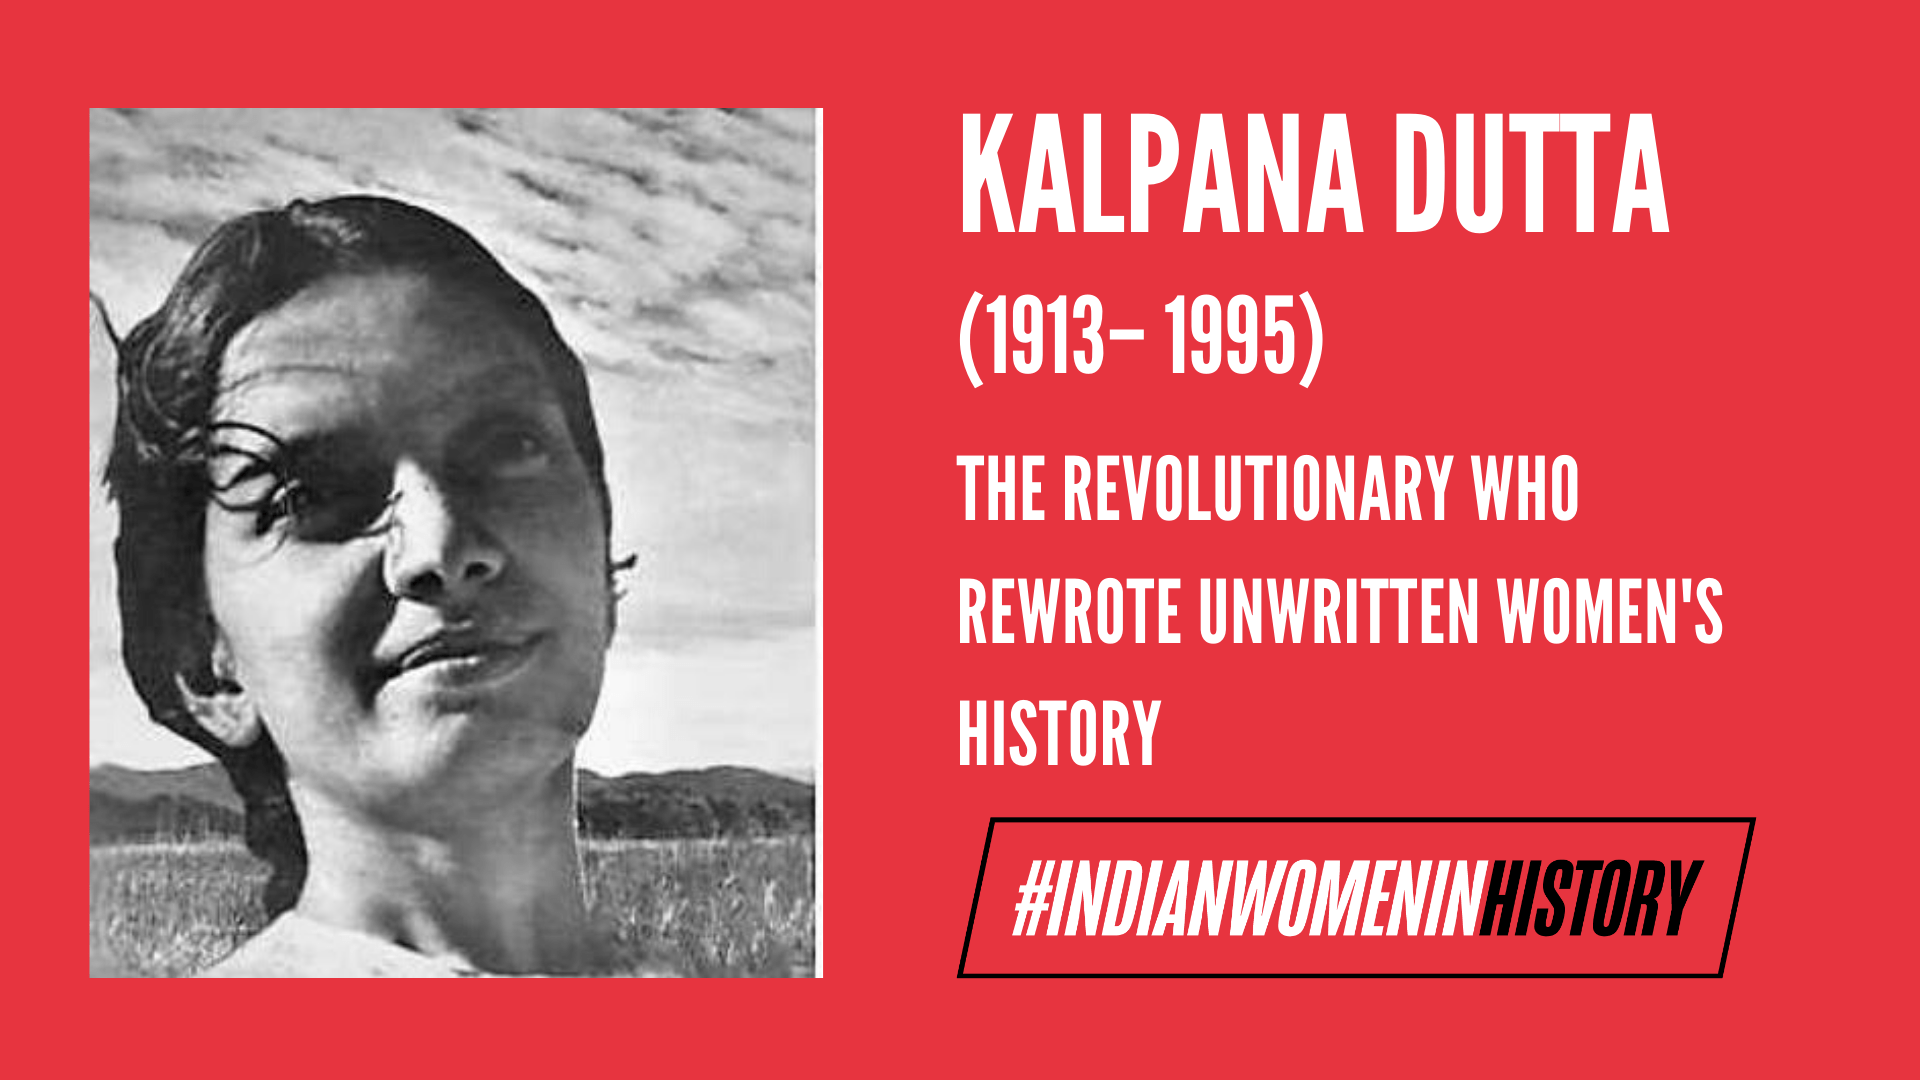 Kalpana Dutta : The Revolutionary Who Rewrote Unwritten Women's History| #IndianWomenInHistory